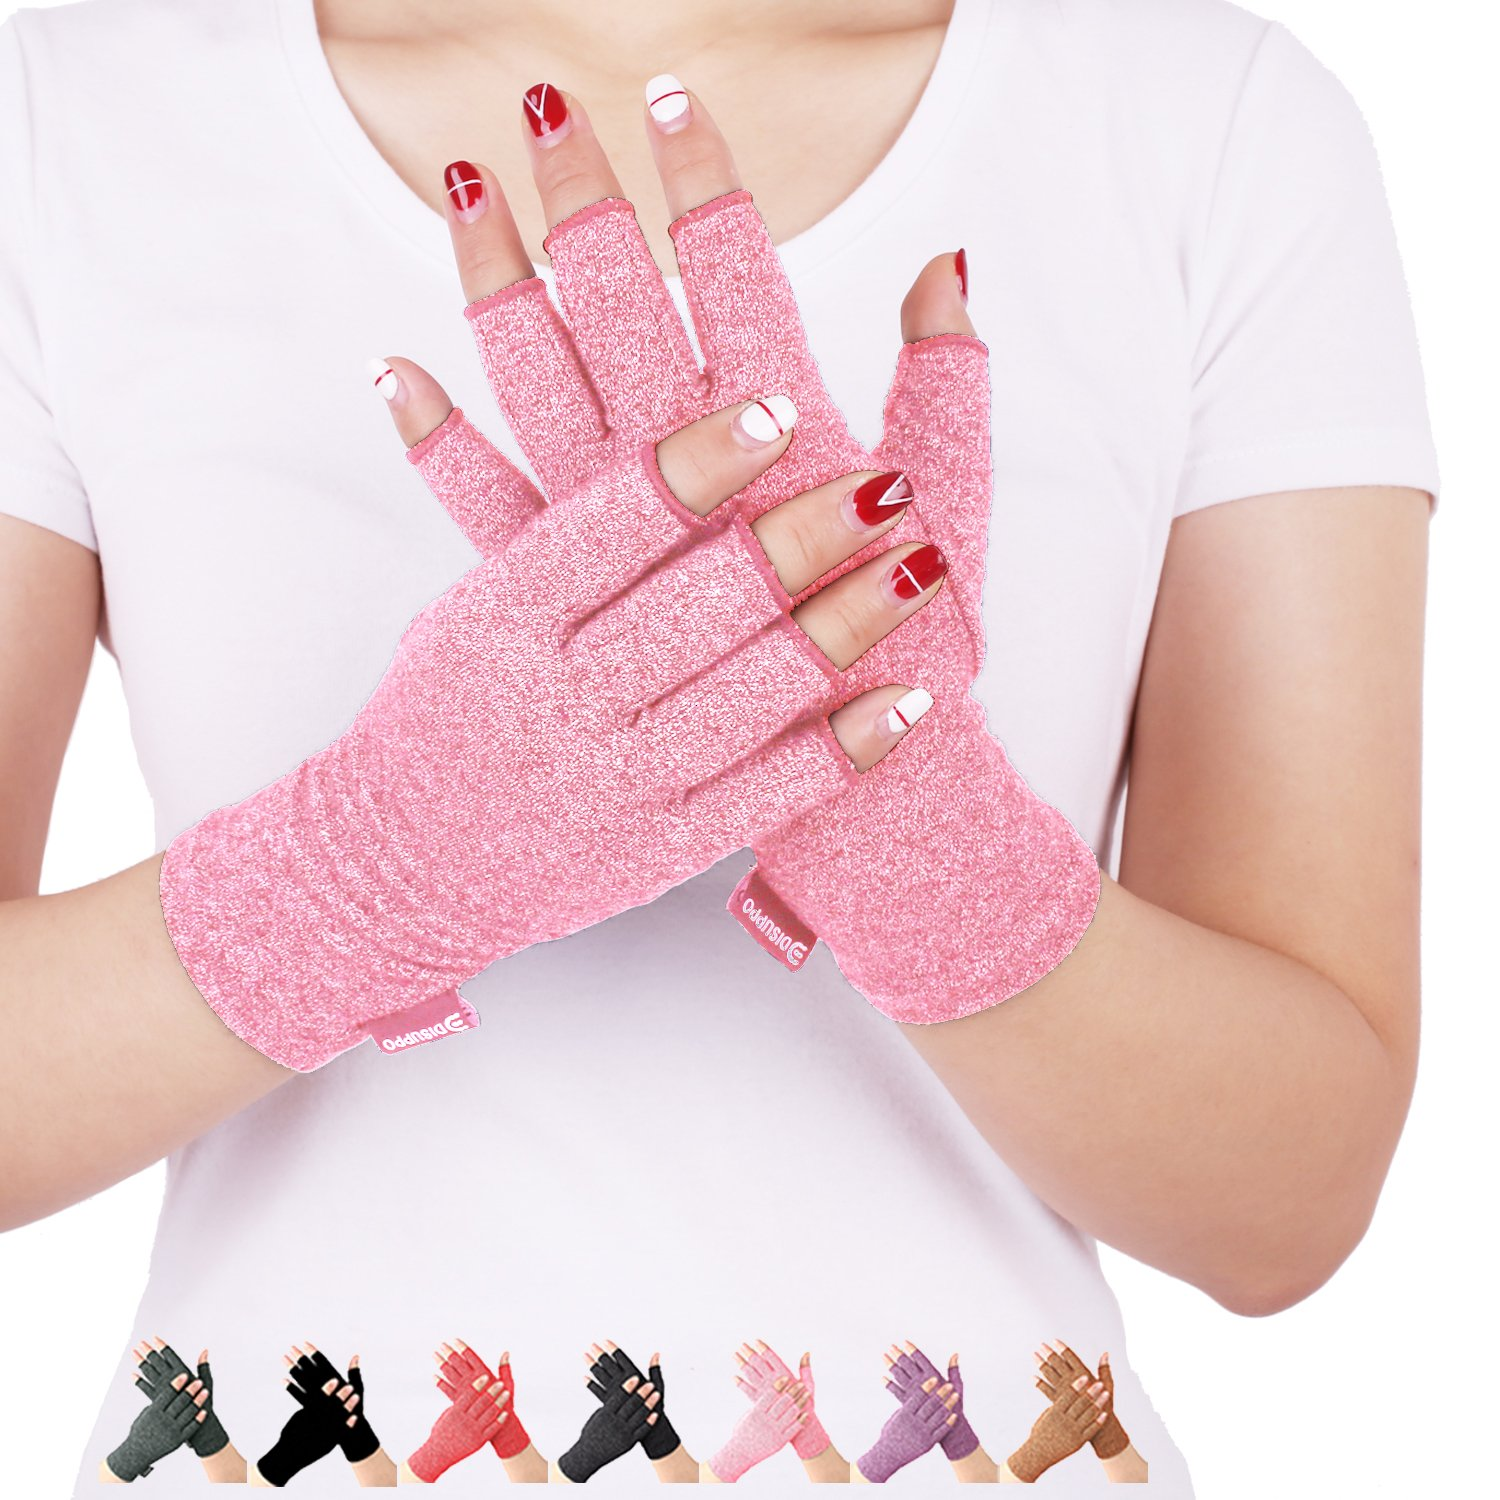 Arthritis Compression Gloves Relieve Pain from Rheumatoid, RSI,Carpal Tunnel, Hand Gloves Fingerless for Computer Typing and Dailywork, Support For Hands And Joints (Pink, Medium)